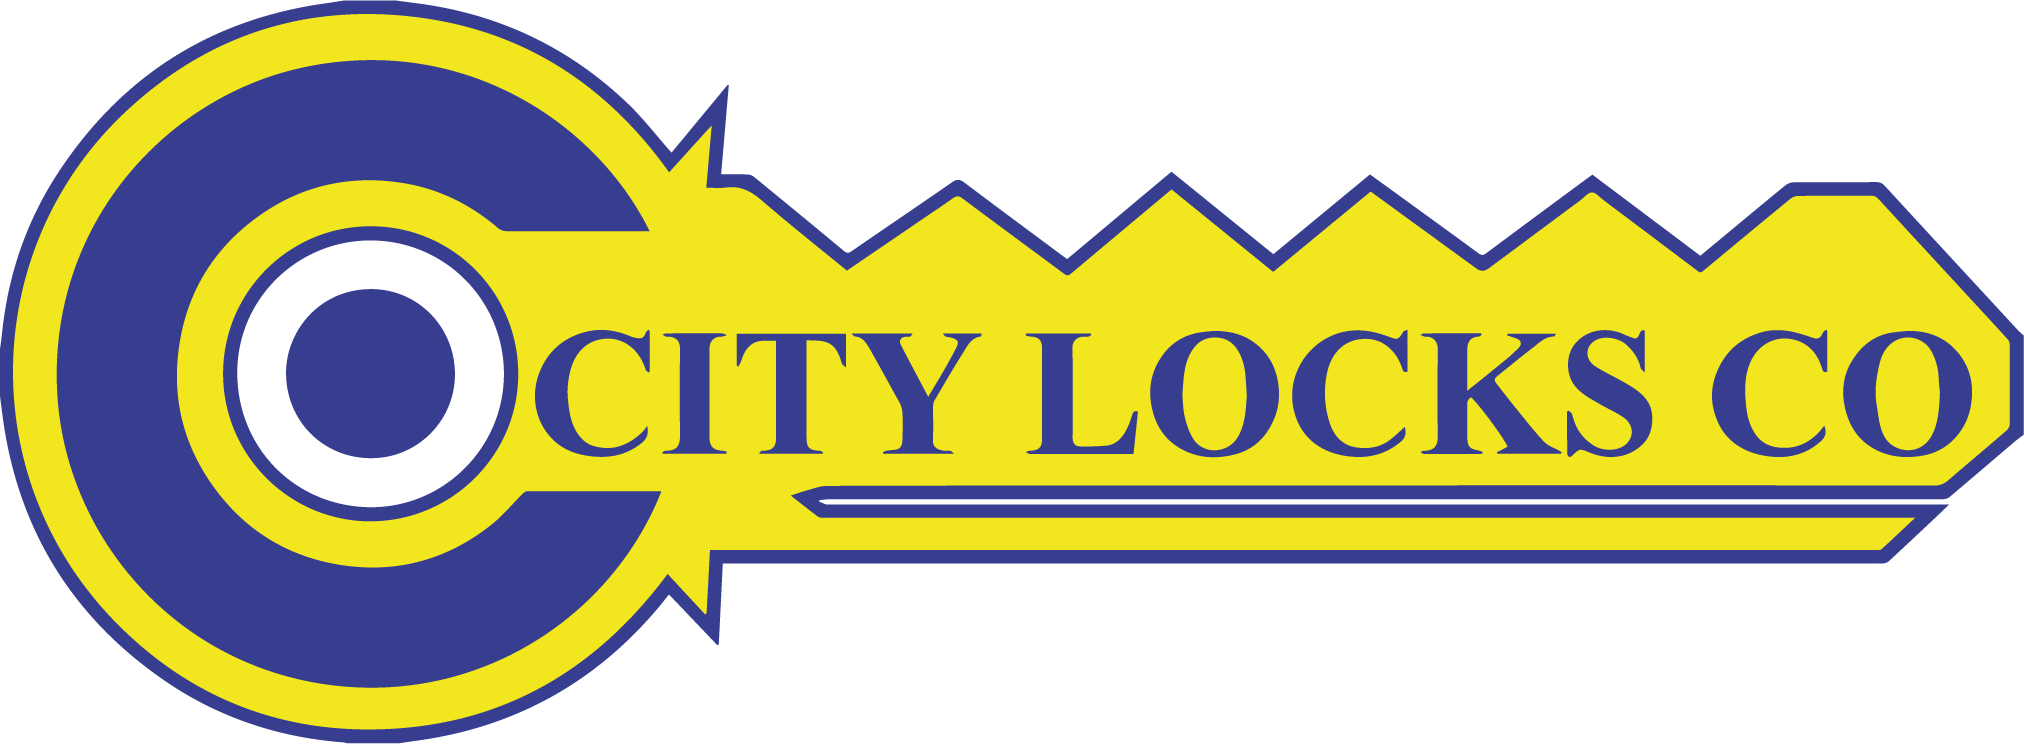 City Locks Co.